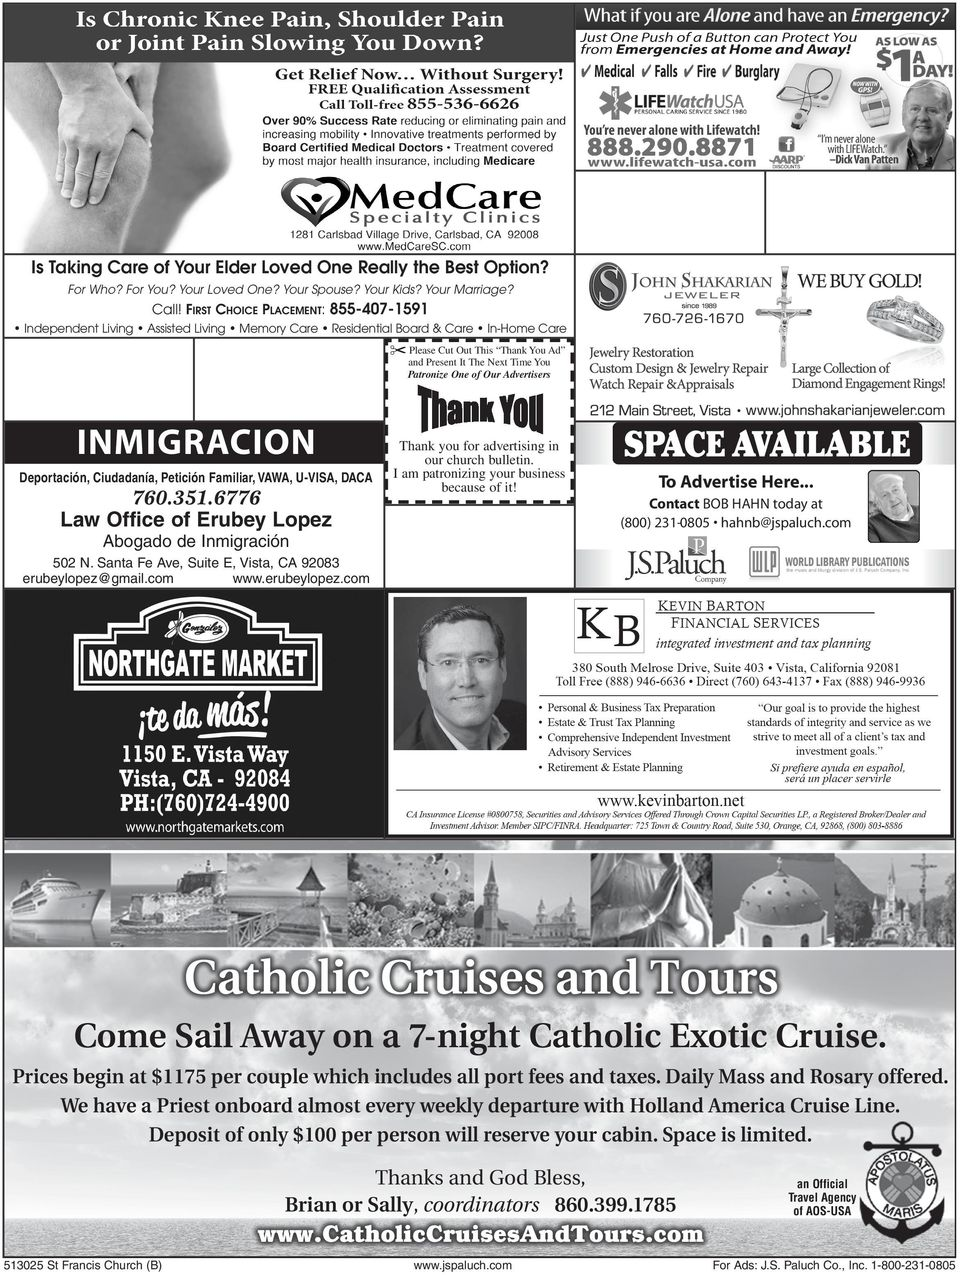 One of Our Advertisers INMIGRACION Deportación, Ciudadanía, Petición Familiar, VAWA, U-VISA, DACA 760.351.6776 Law Office of Erubey Lopez Thank you for advertising in our church bulletin.